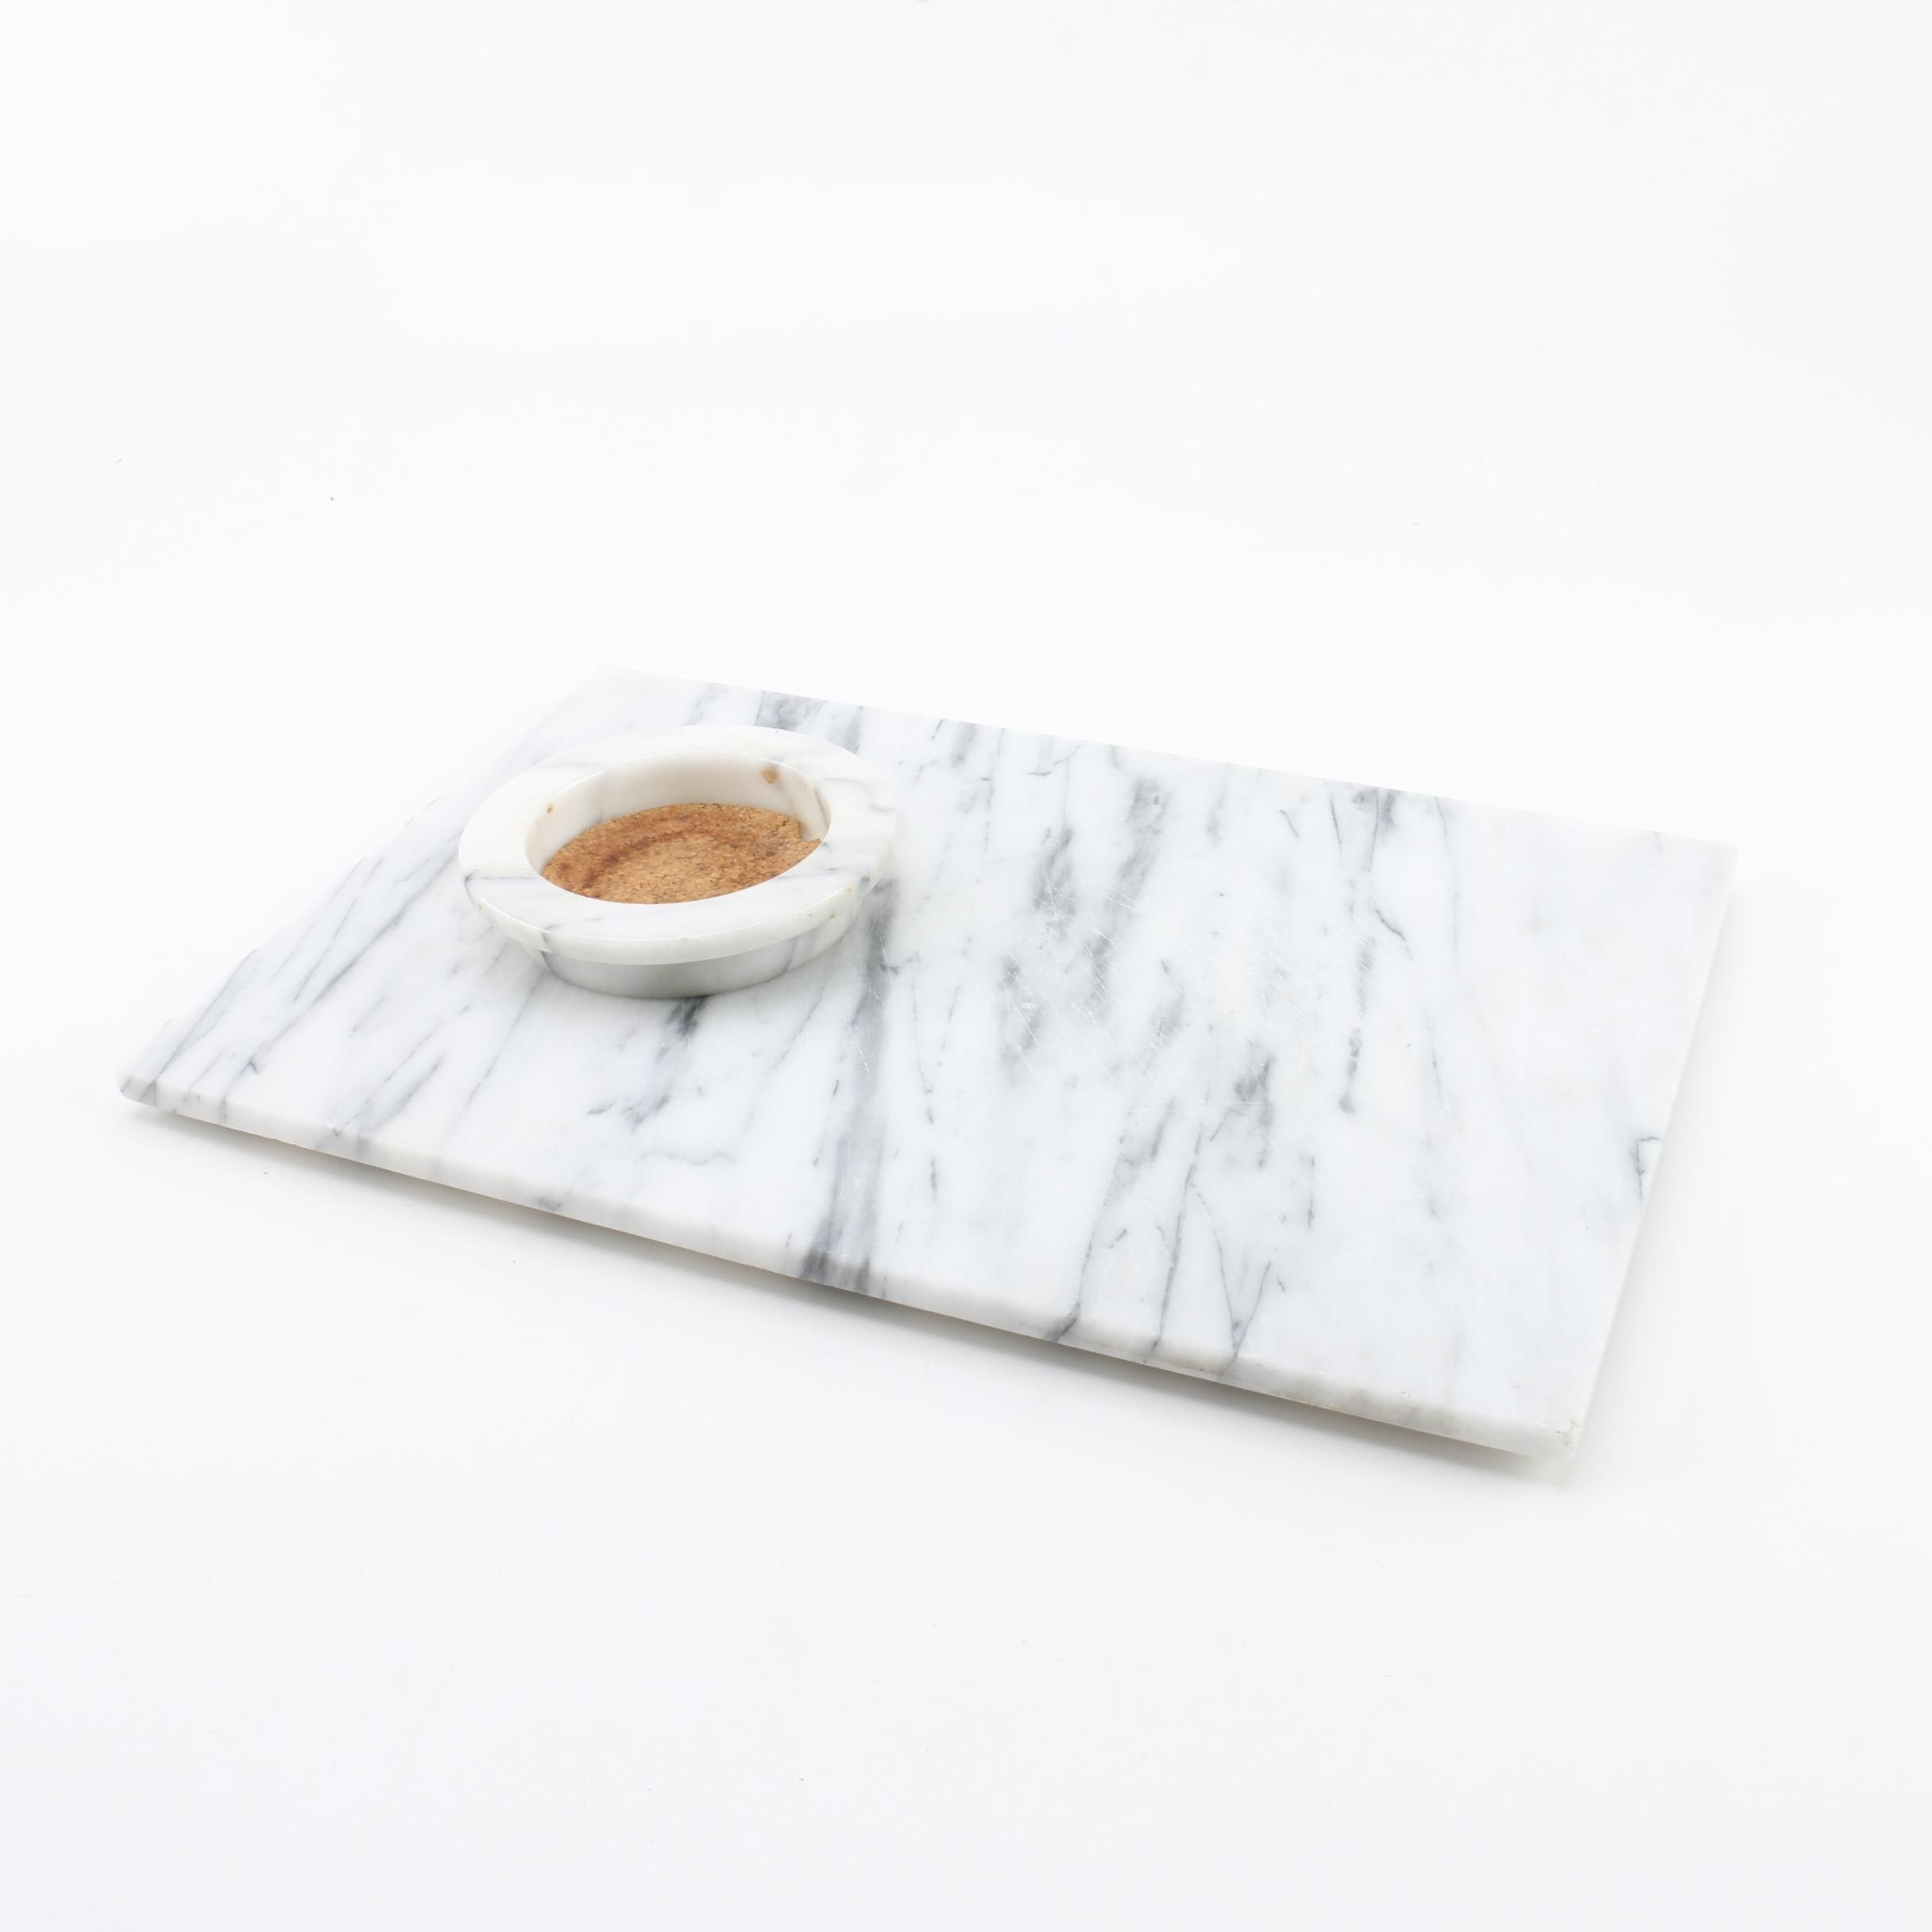 Hei Himark Gray Marble Cutting Board and Bottle Coaster